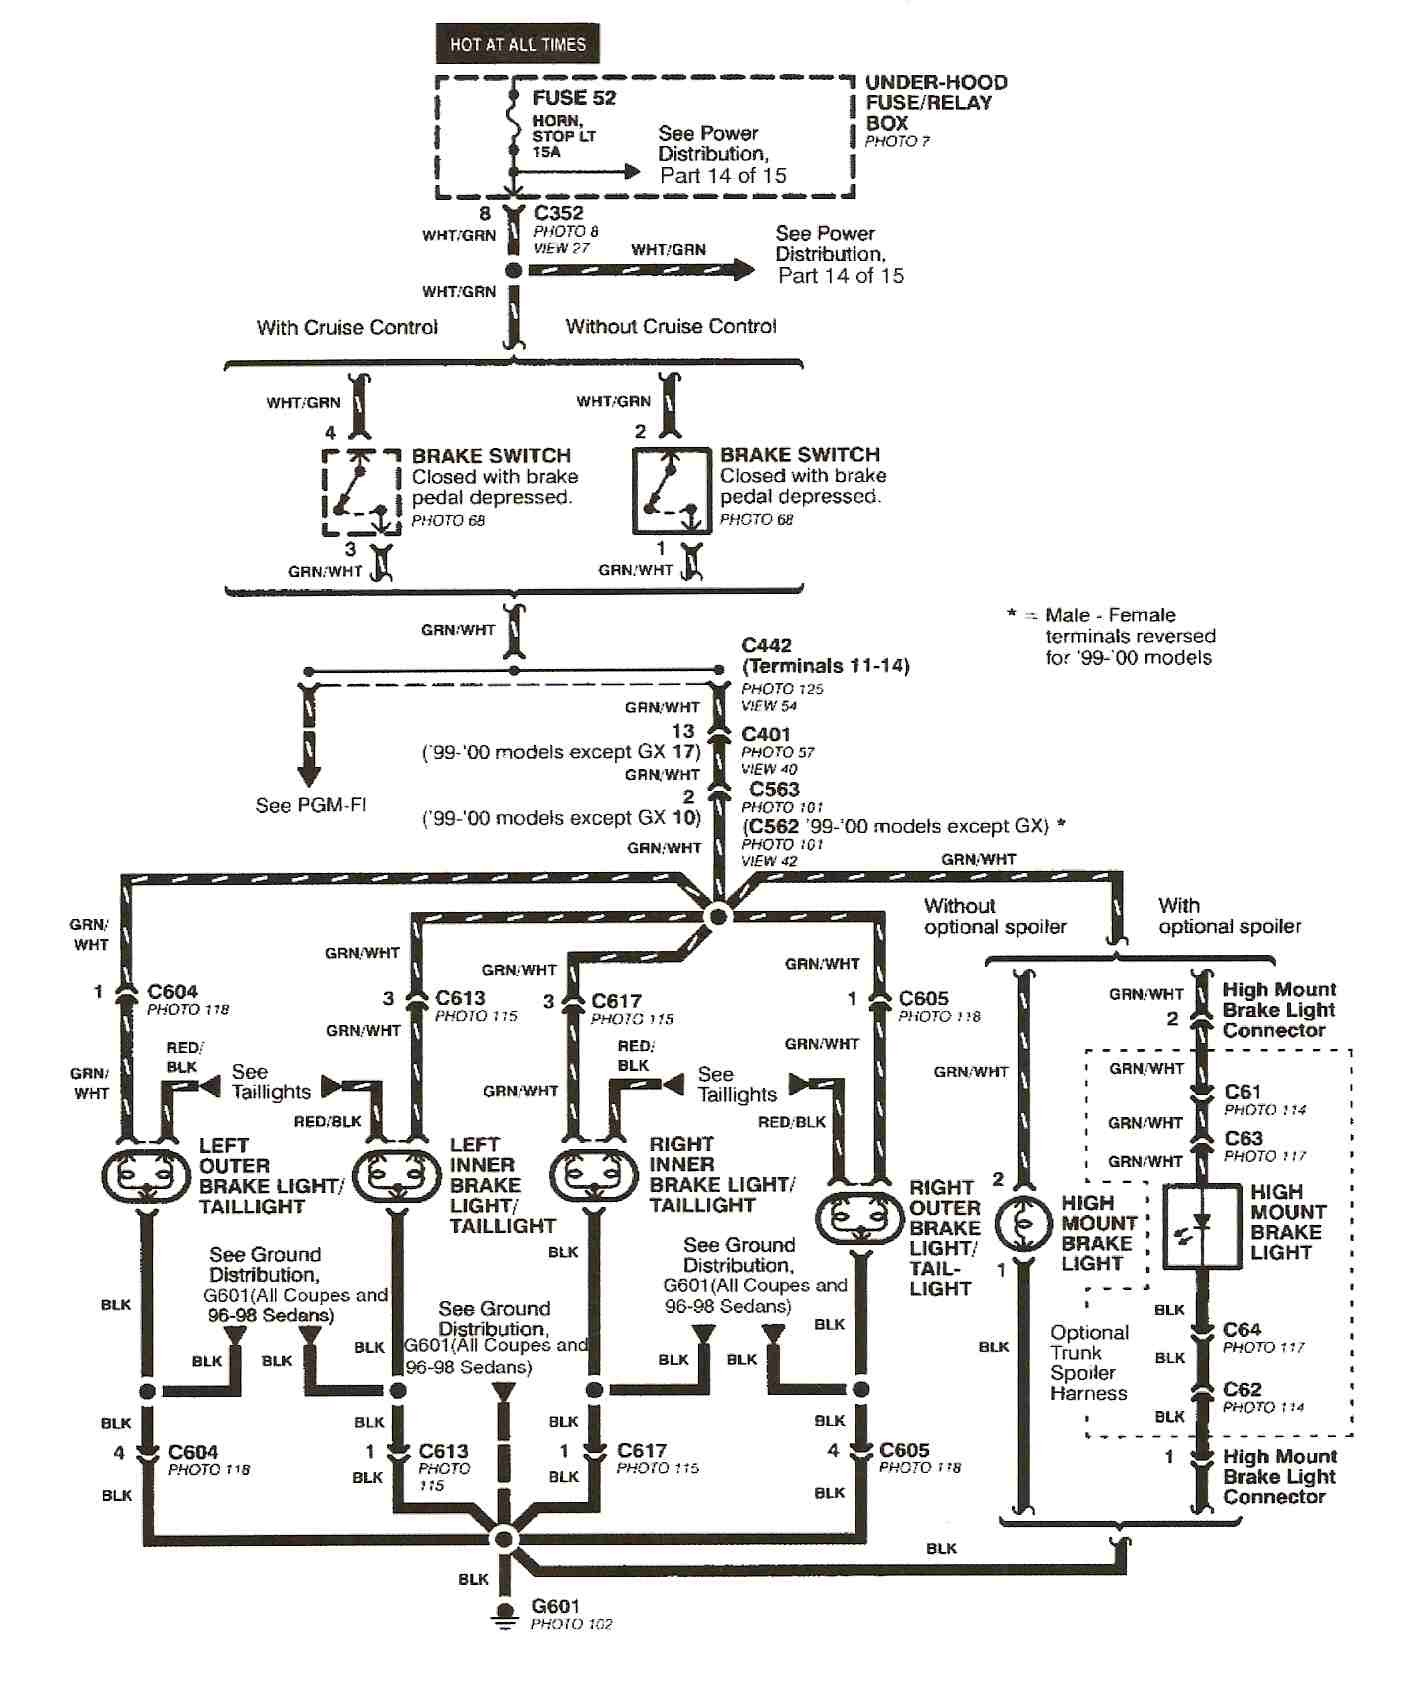 hight resolution of  1991 honda crx stereo wiring diagram 1991 honda civic electrical wiring diagram and schematics